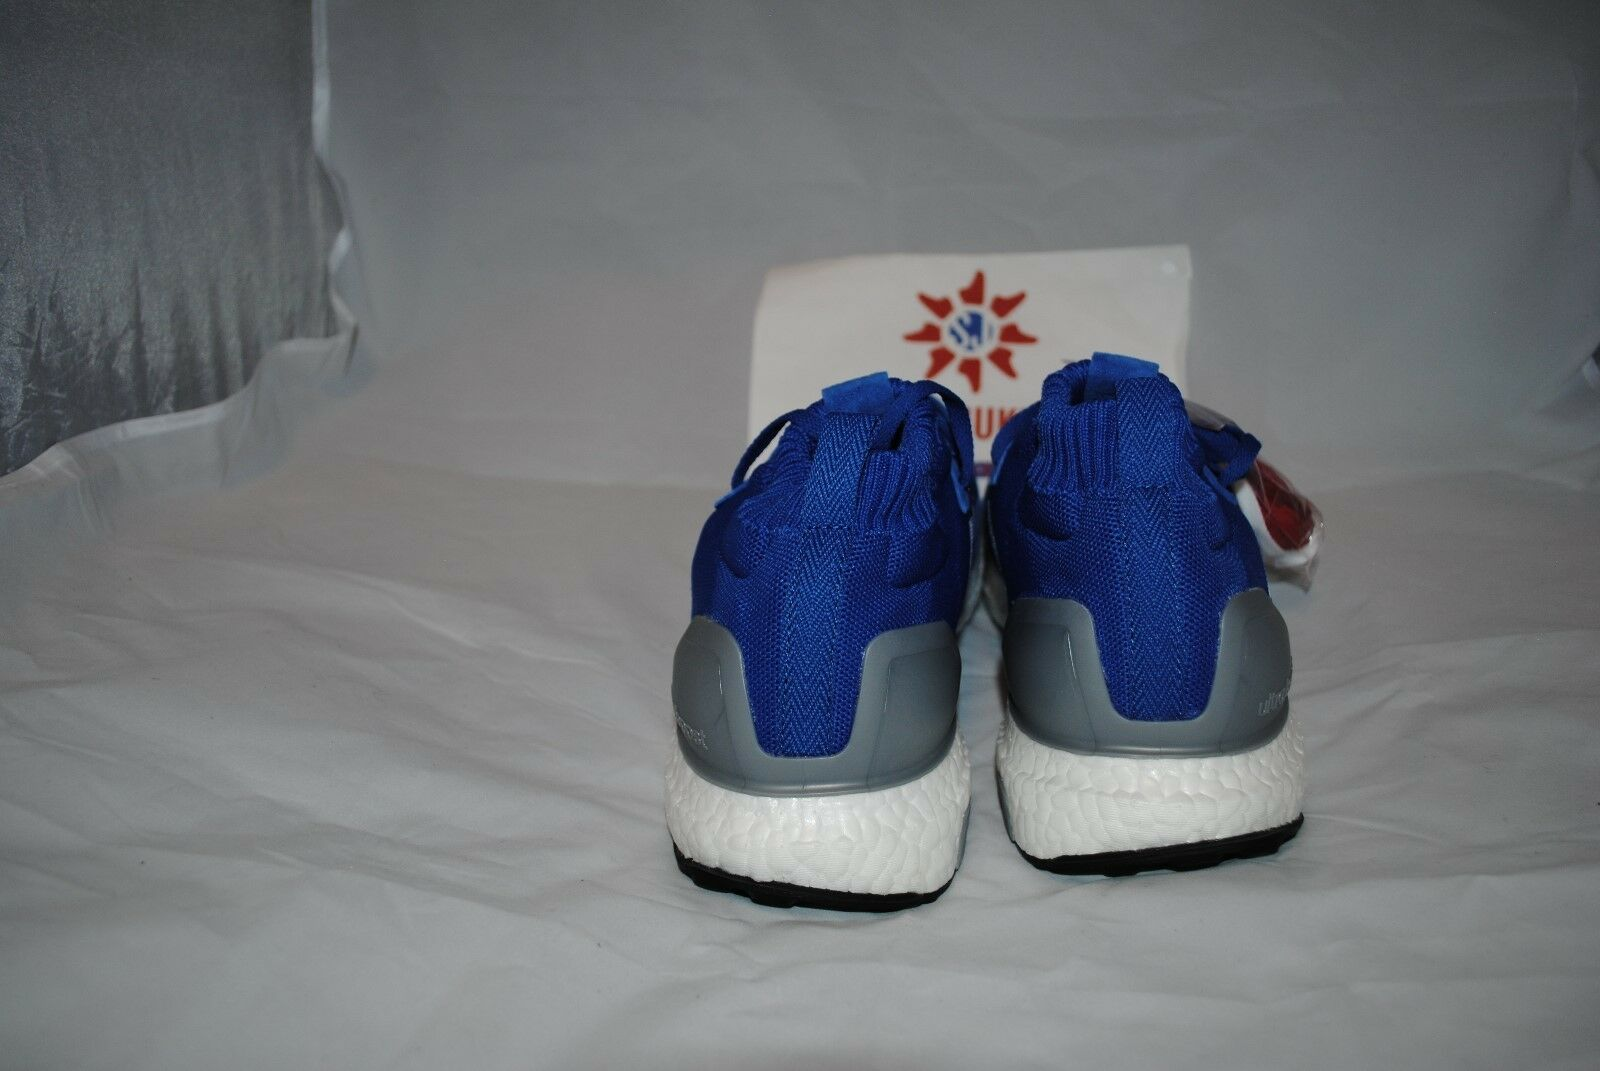 f0a6dcba77 ... ADIDAS ULTRA BOOST MID RUN THRU TIME blueE BY5036 - - - SIZE 8-12